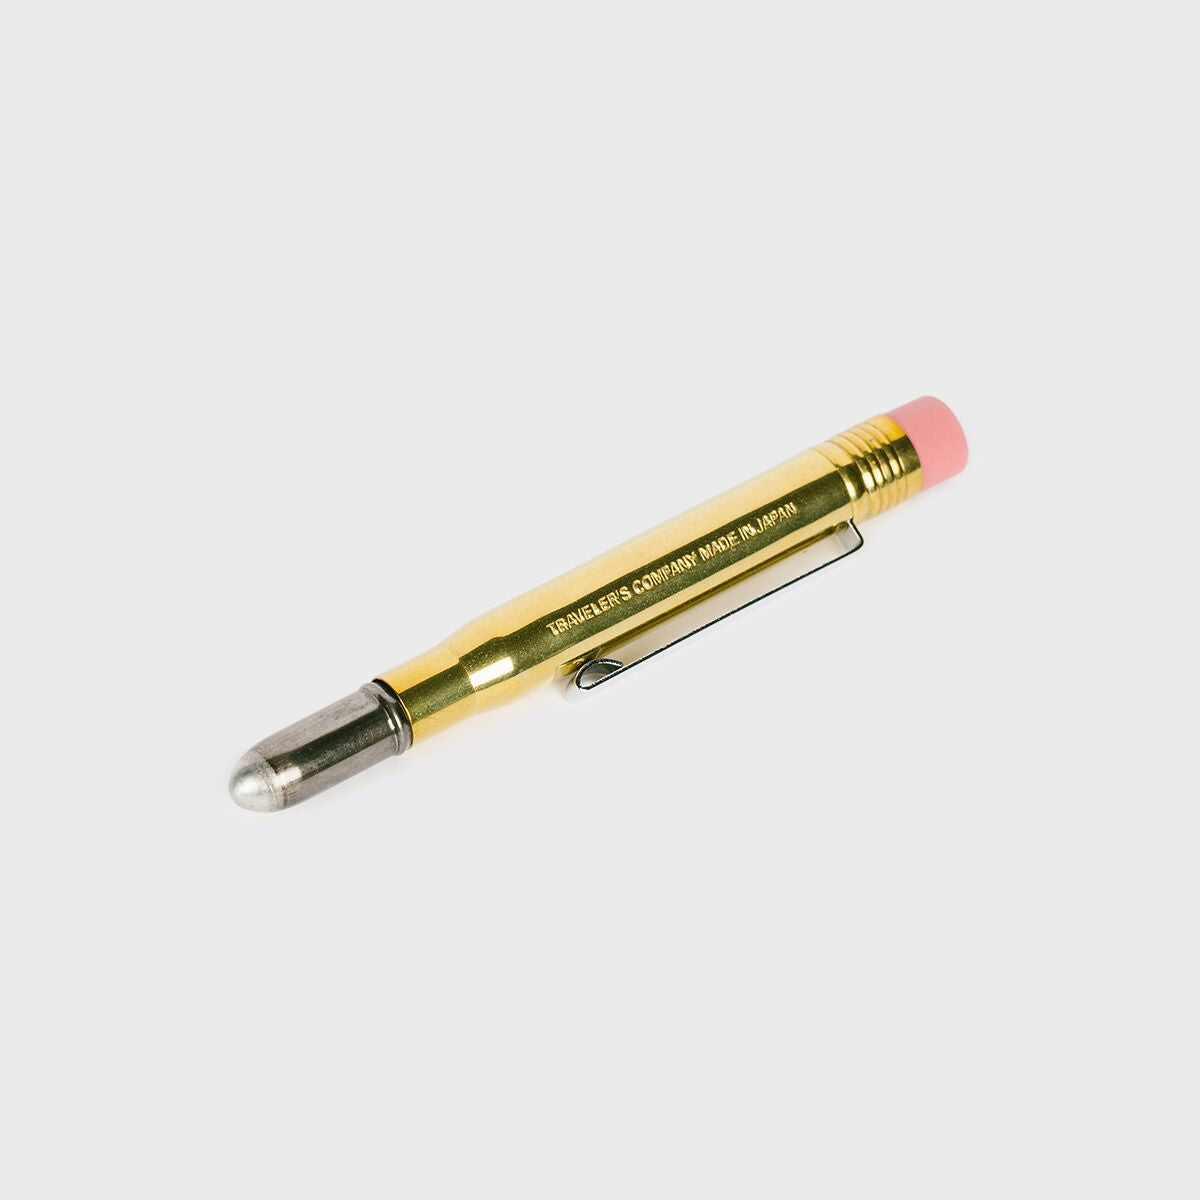 JPT America TRC Brass Pencil